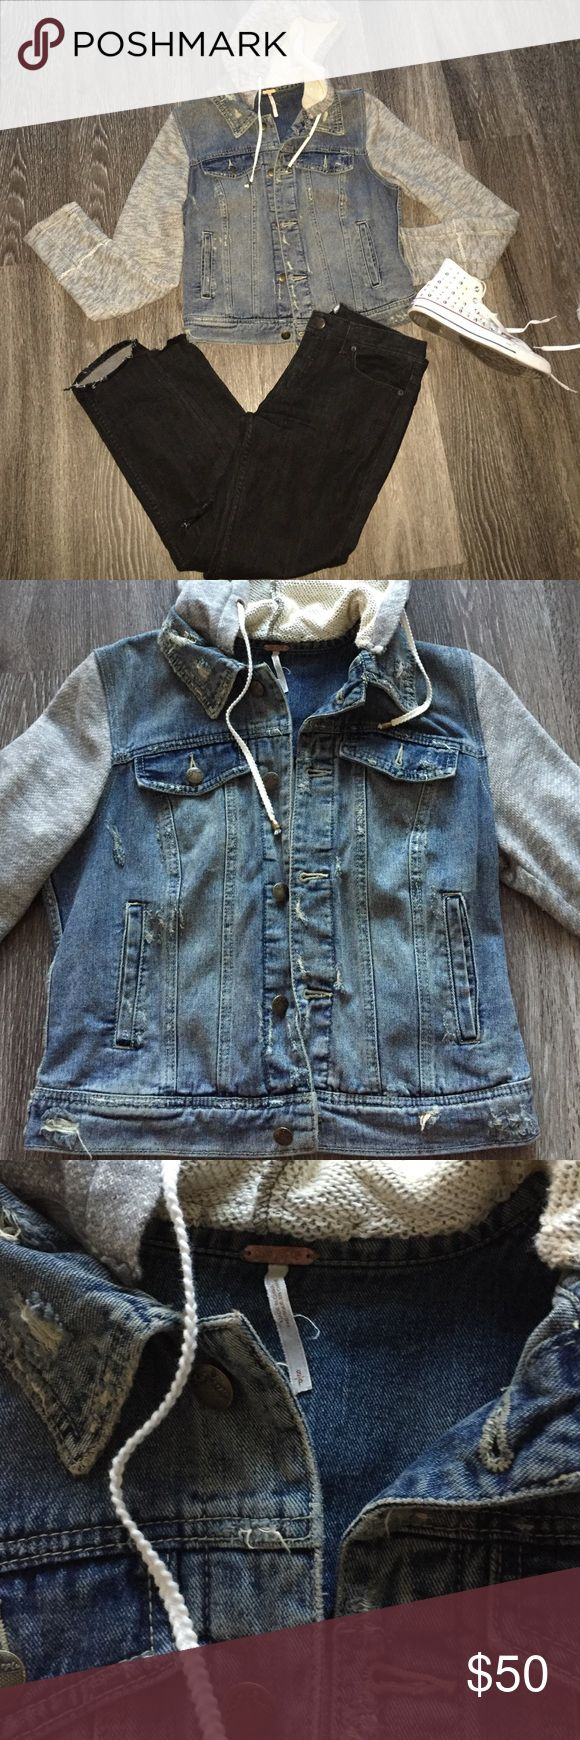 Free People jean jacket hoodie Lightly distressed with gray sleeves and hood. perfect for upcoming fall! Great condition. Free People Jackets & Coats Jean Jackets